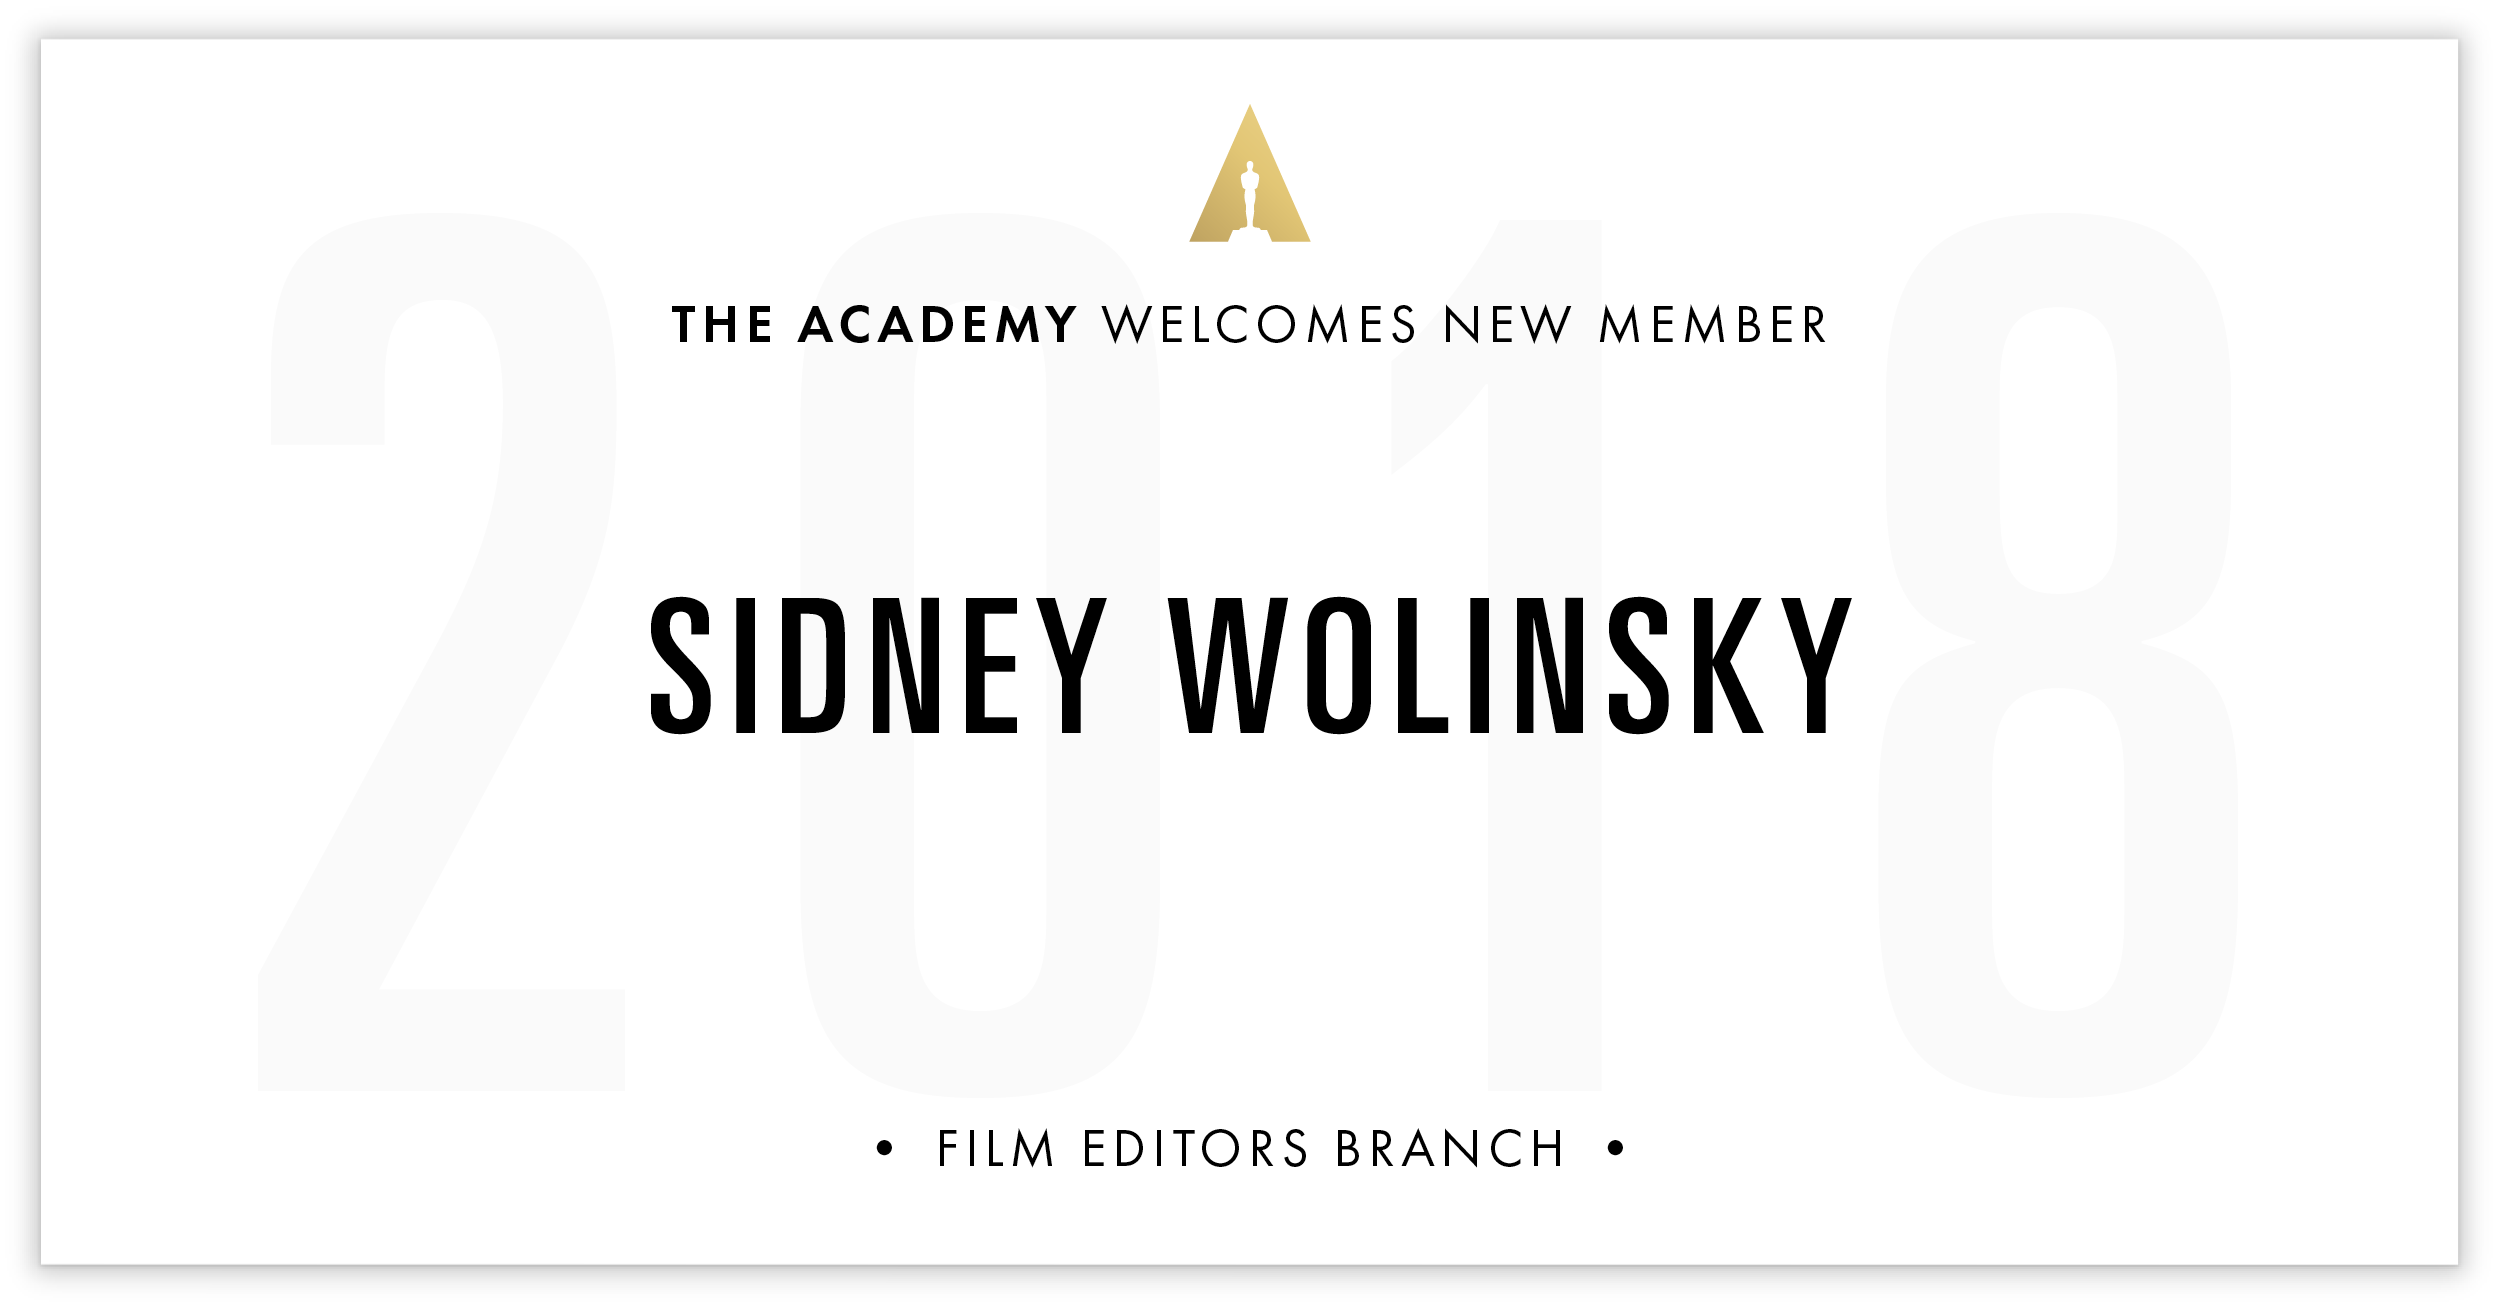 Sidney Wolinsky is invited!